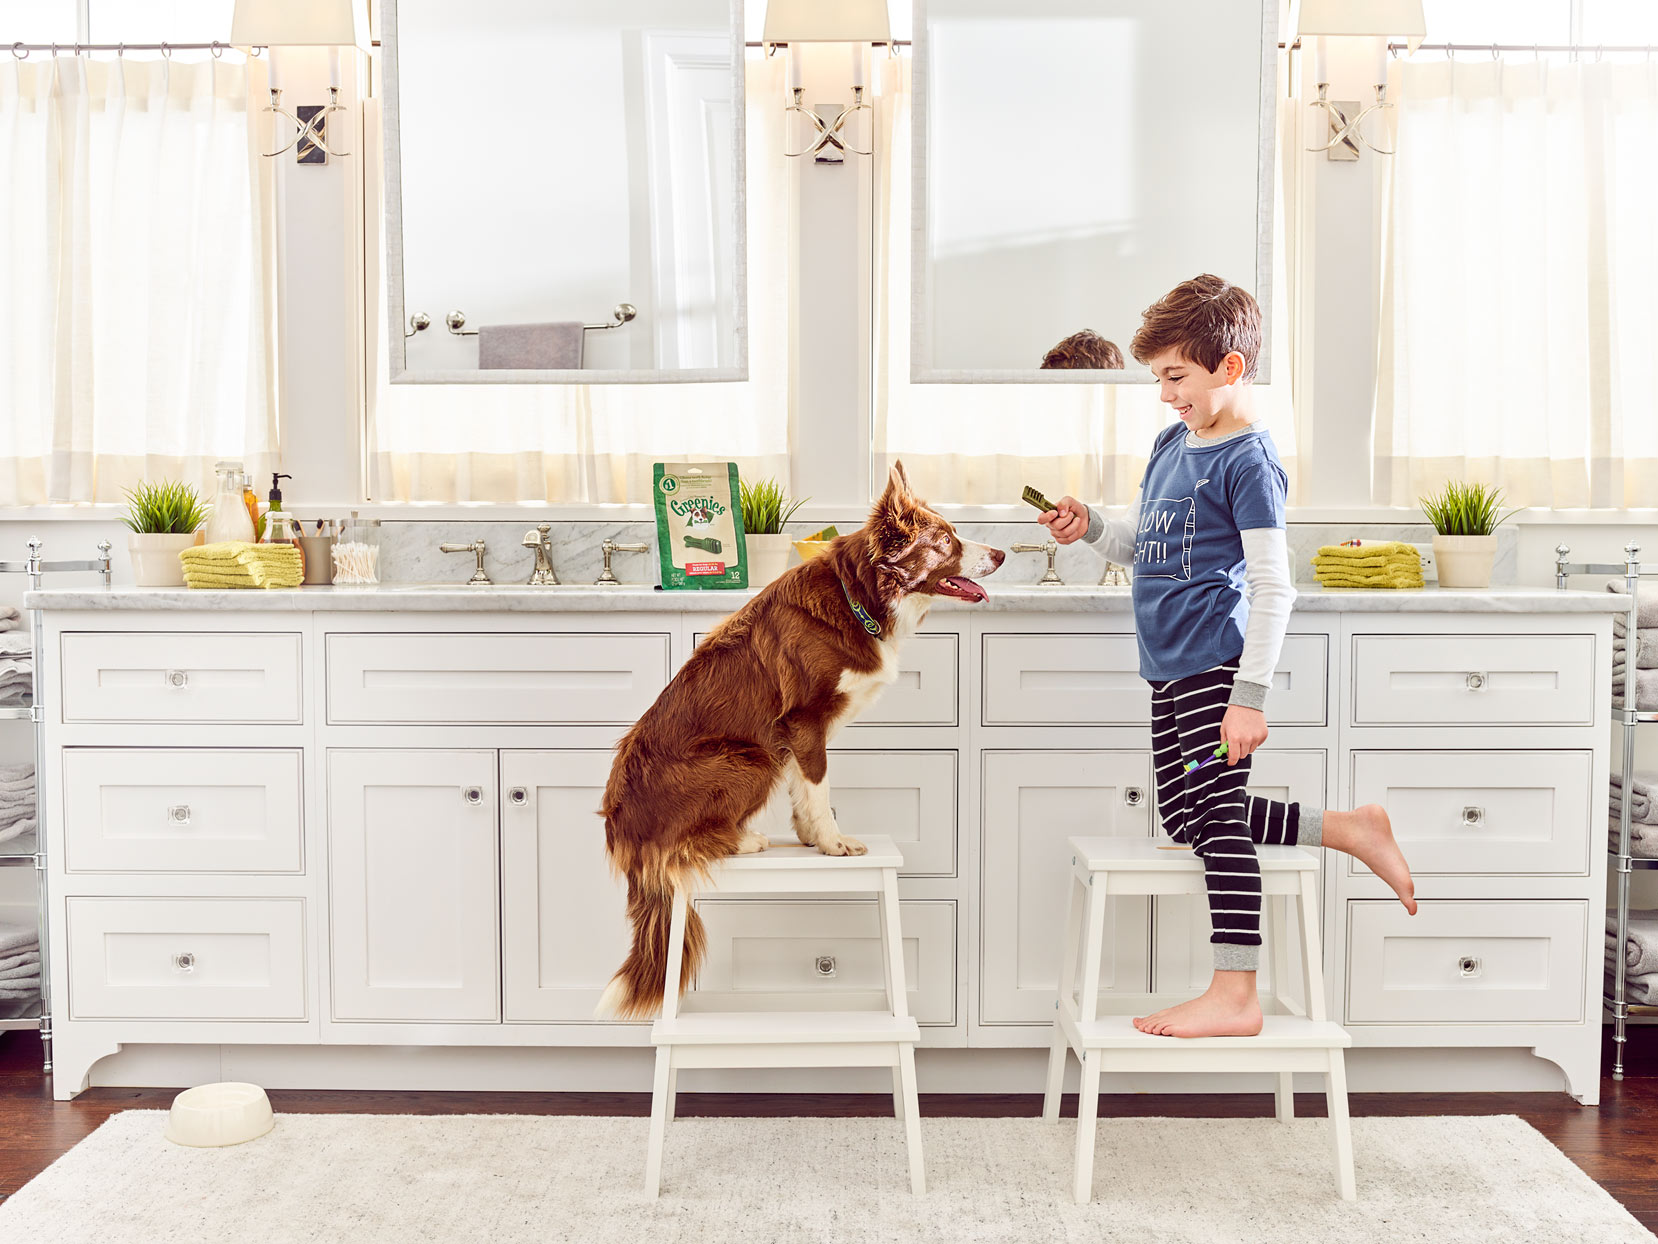 Mark DeLong - Commercial Photography - Seven year old boy sitting on a stool giving his brown dog a treat in the kitchen.